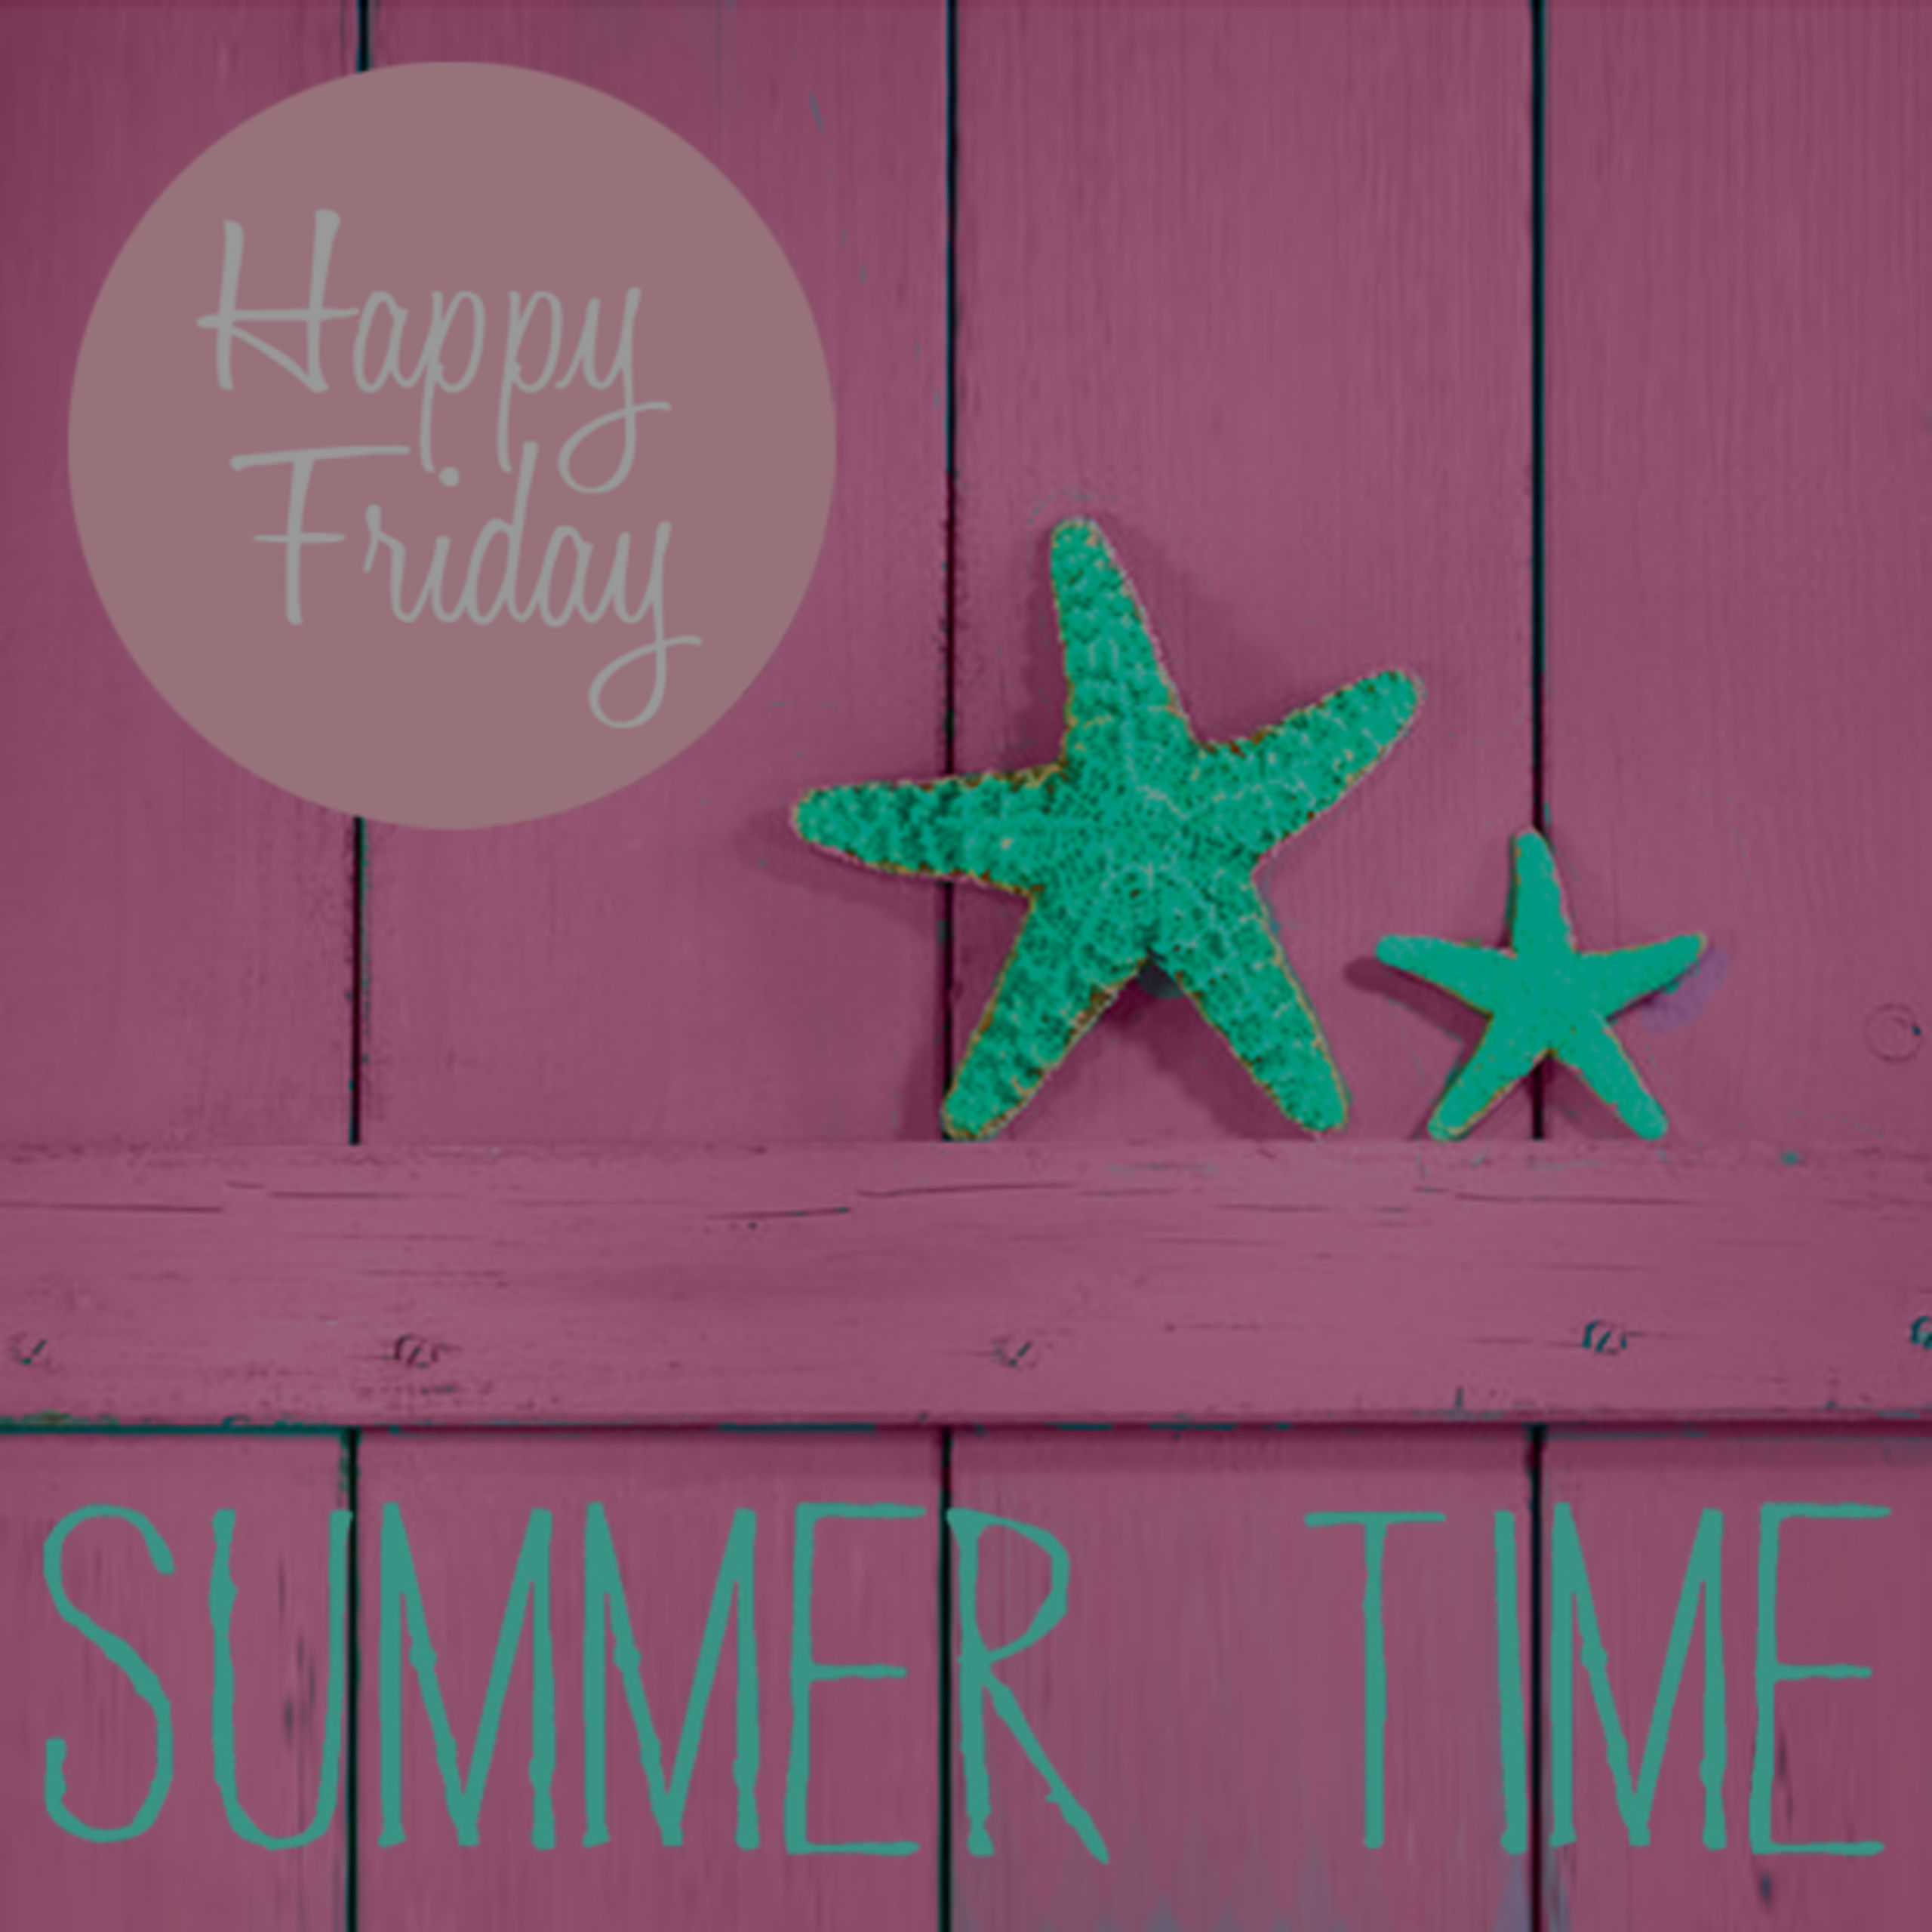 Happy Friday! Summer is Wrapping Up!